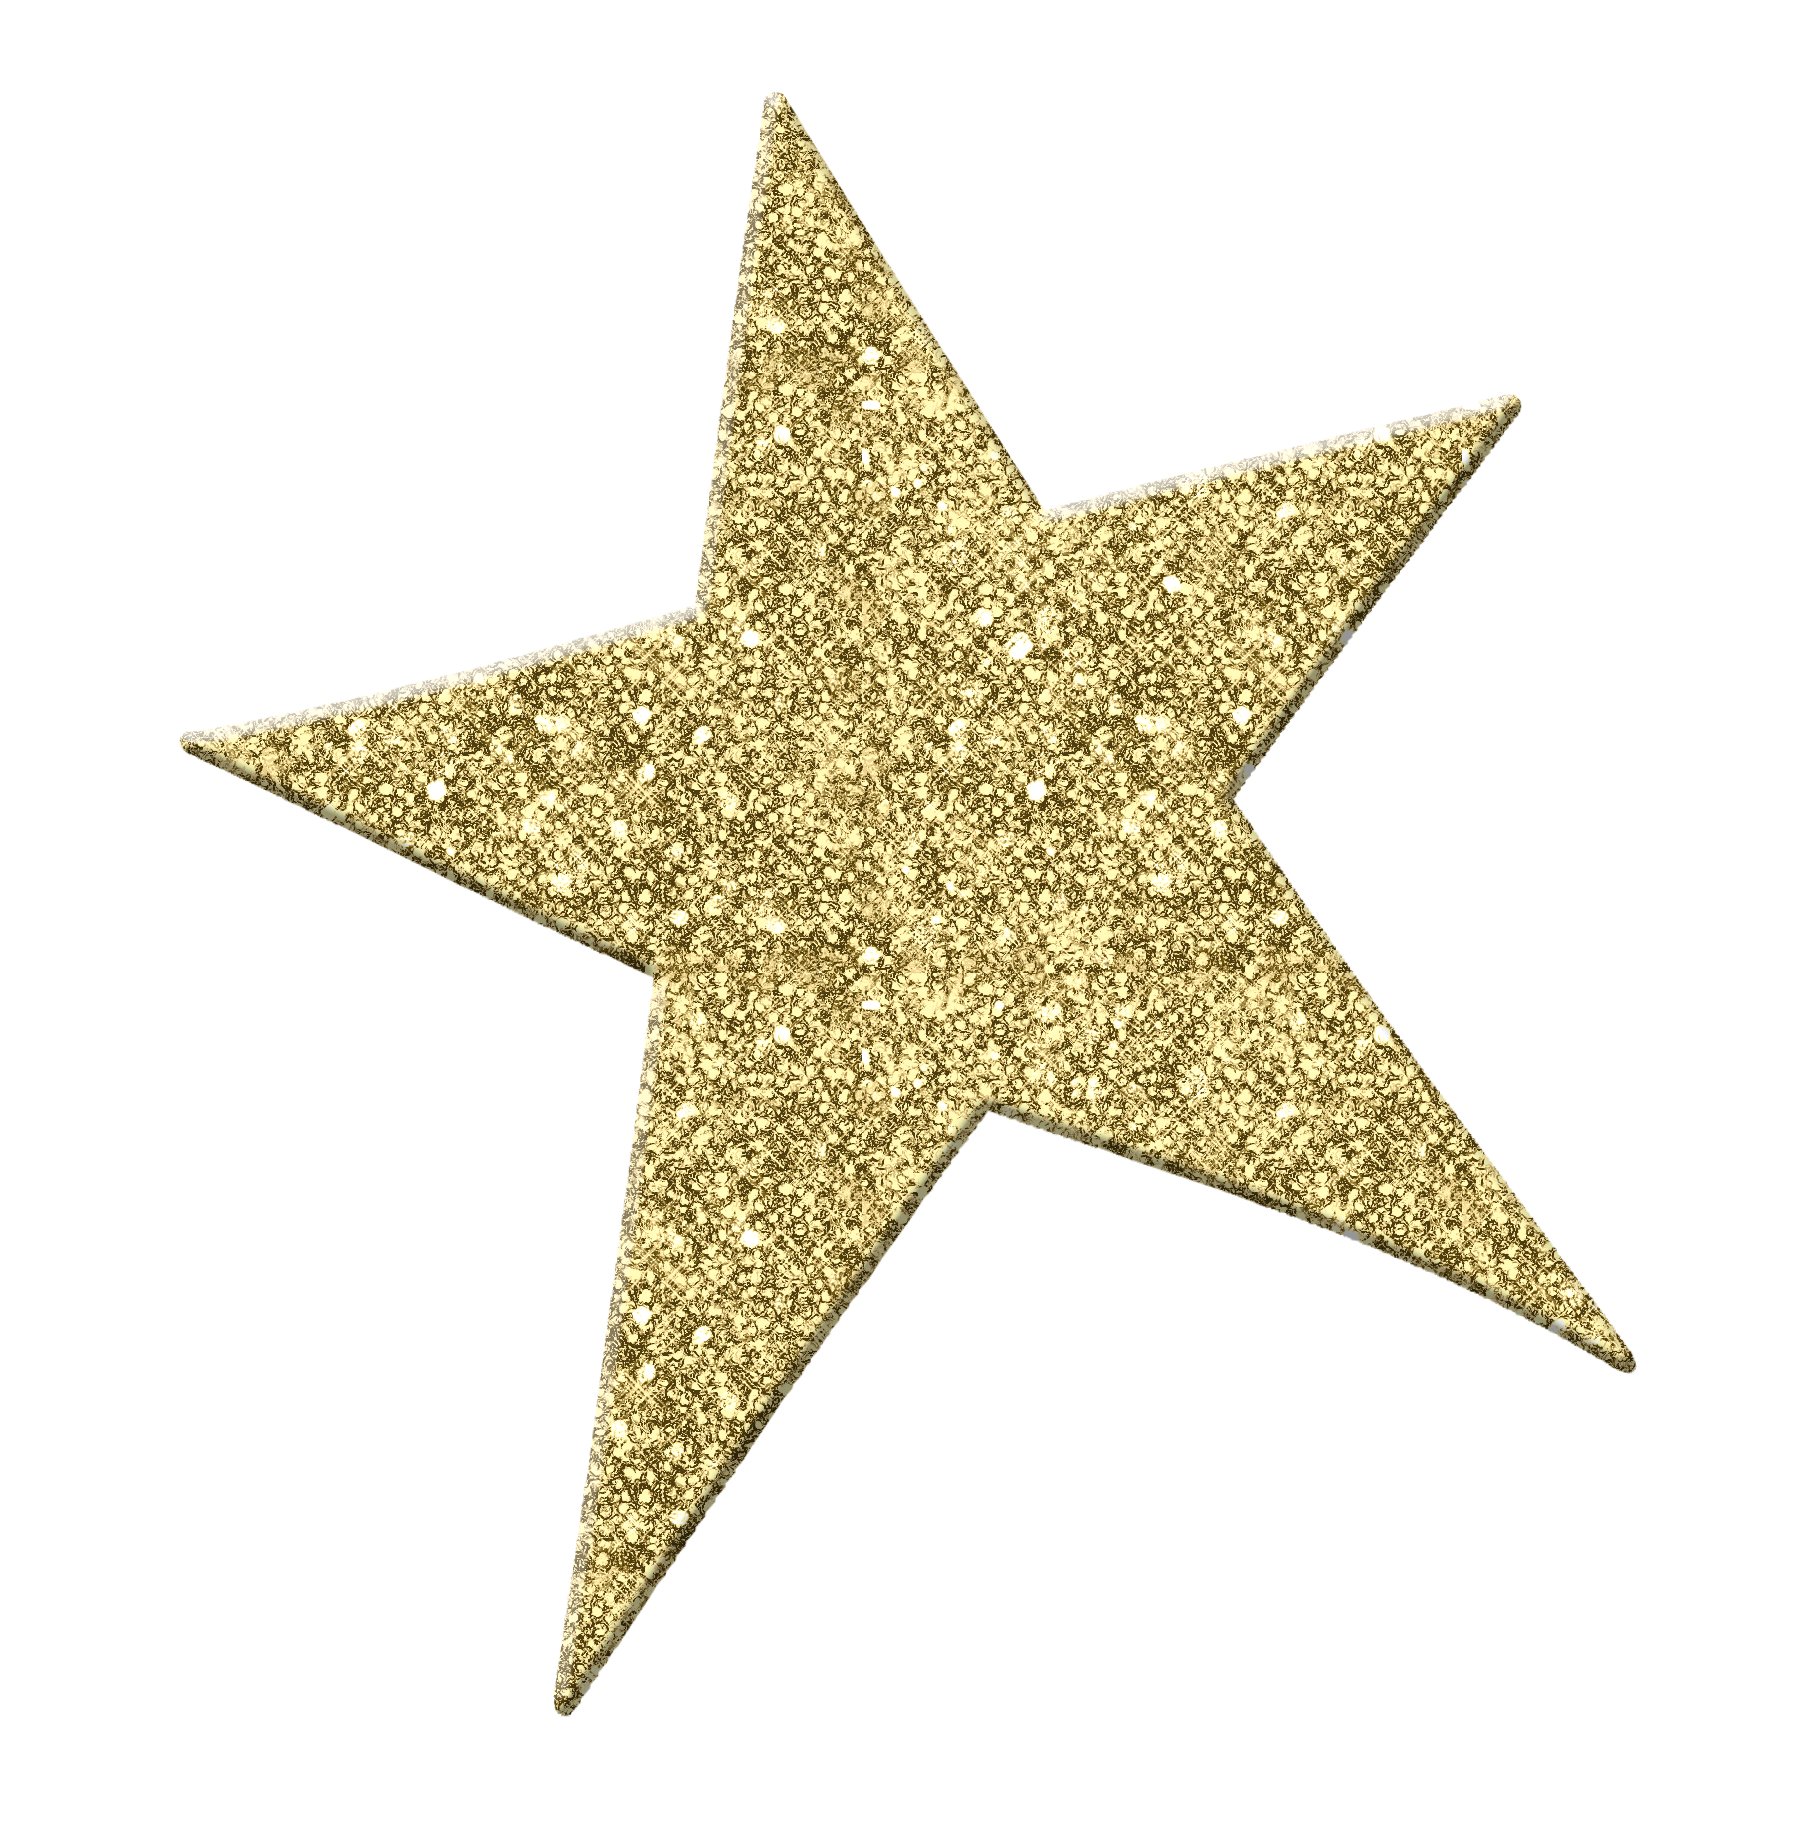 Free gold star clipart clip art transparent Stars Png - Free Icons and PNG Backgrounds clip art transparent